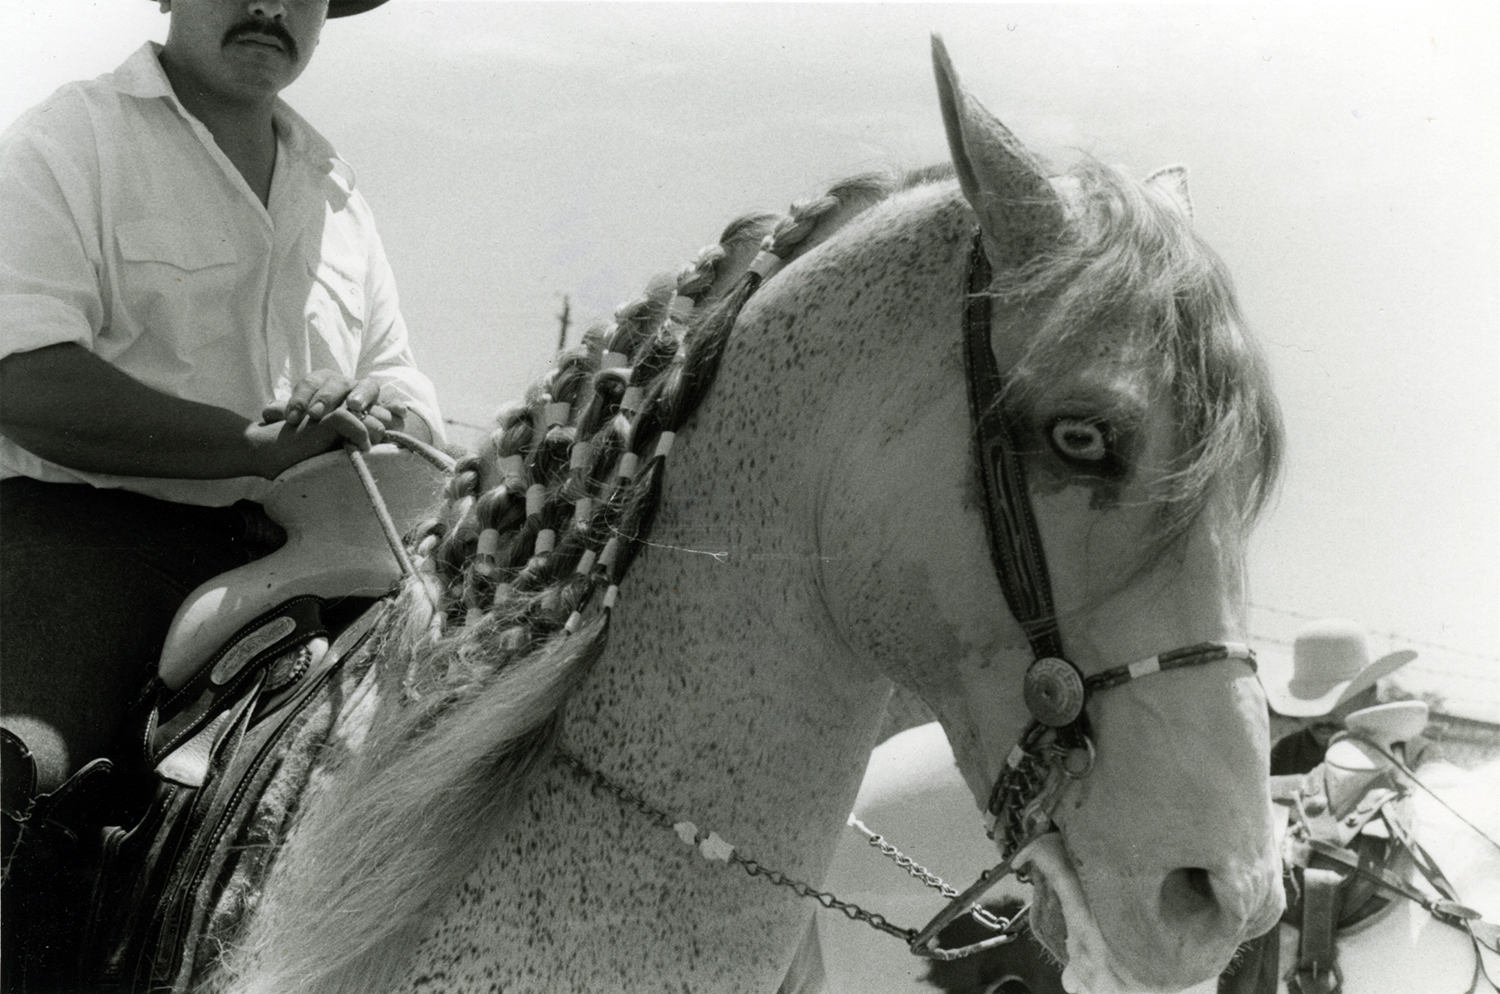 Vaquero With Horse With Plated Mane